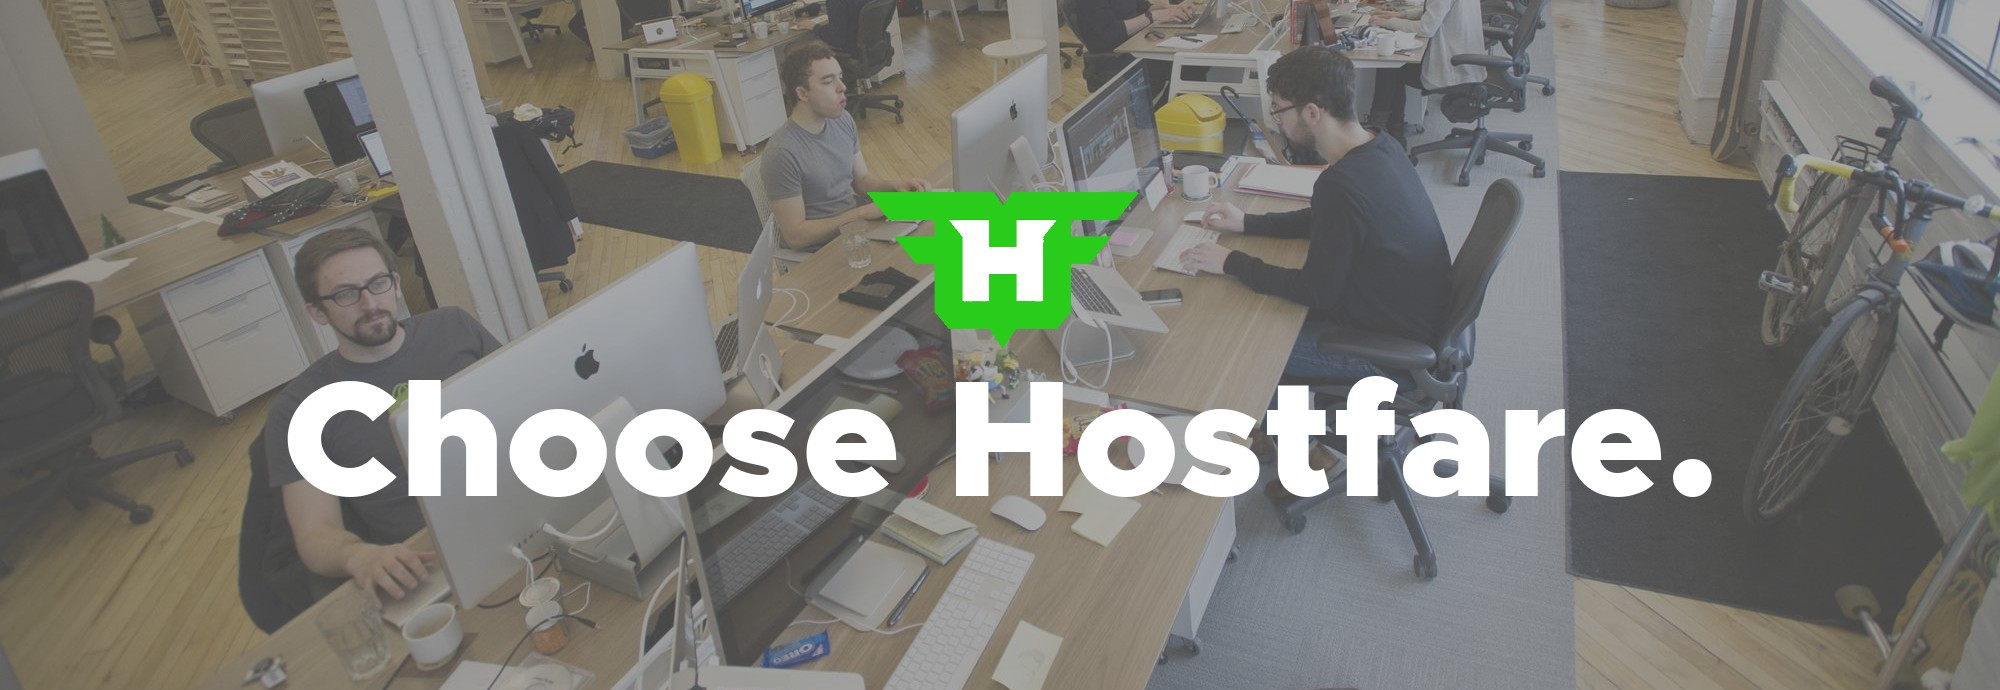 Choose Hostfare.